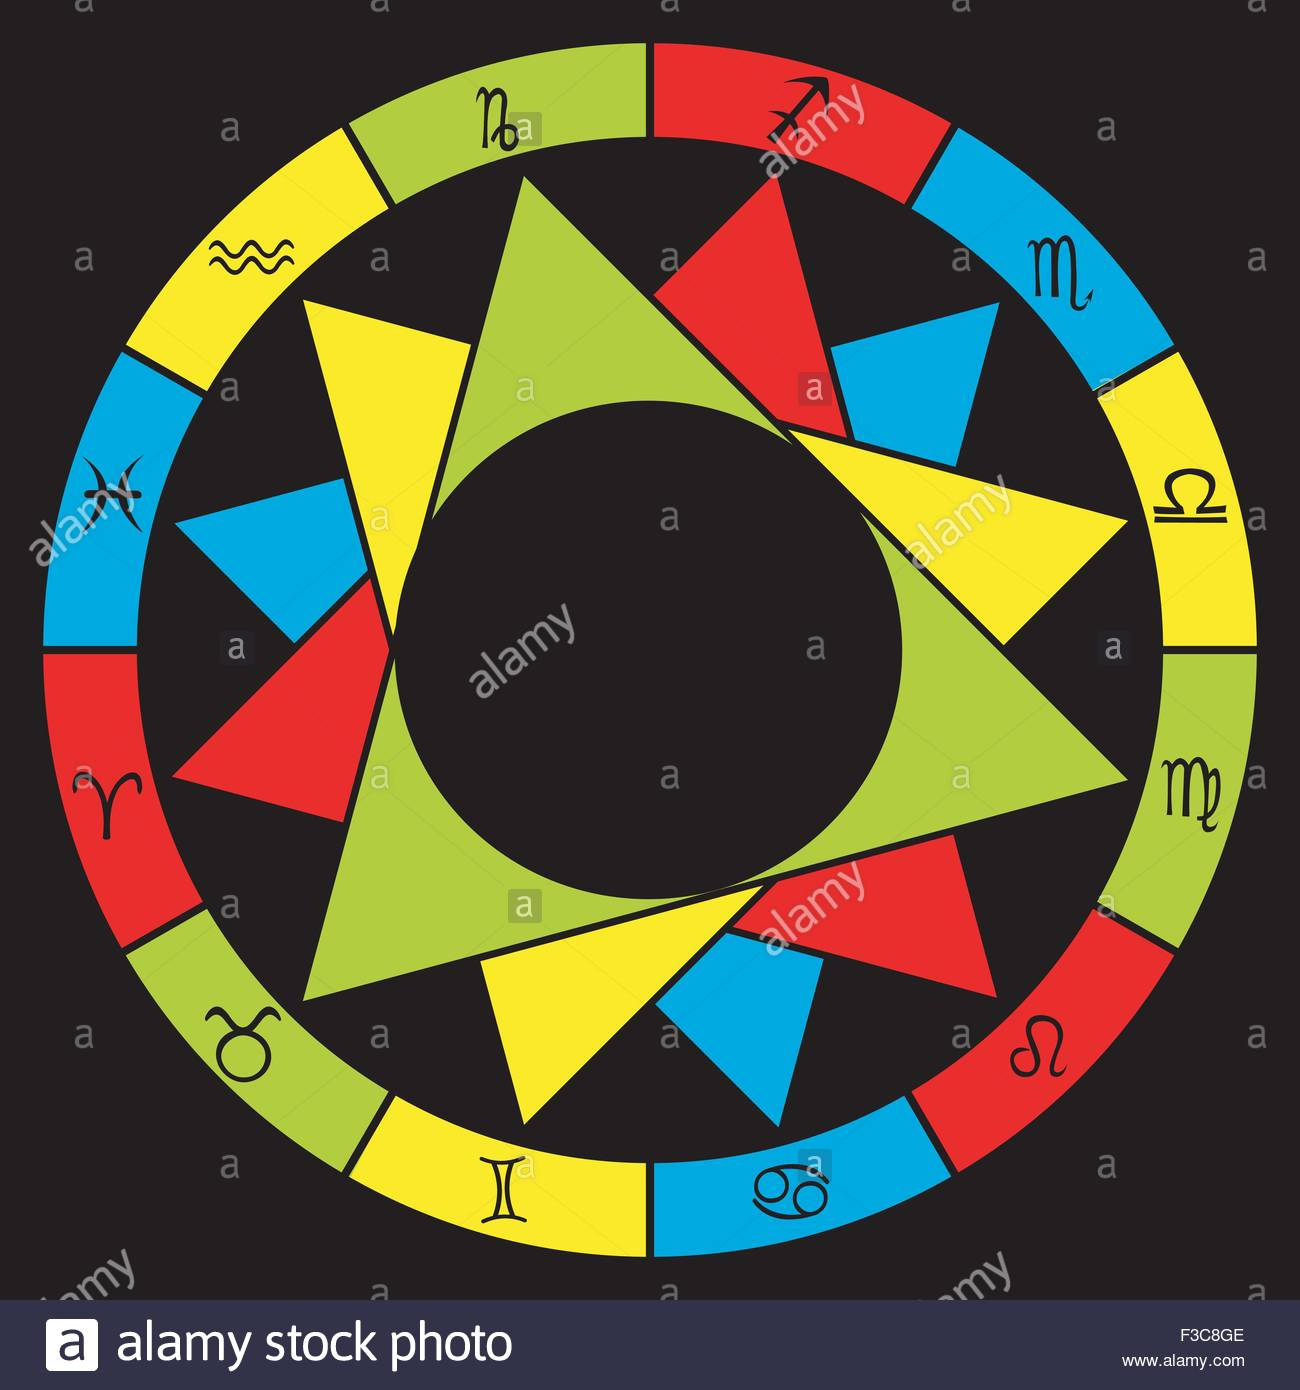 Astrology signs of the zodiac with houses and natal chart divided astrology signs of the zodiac with houses and natal chart divided into elements nvjuhfo Image collections